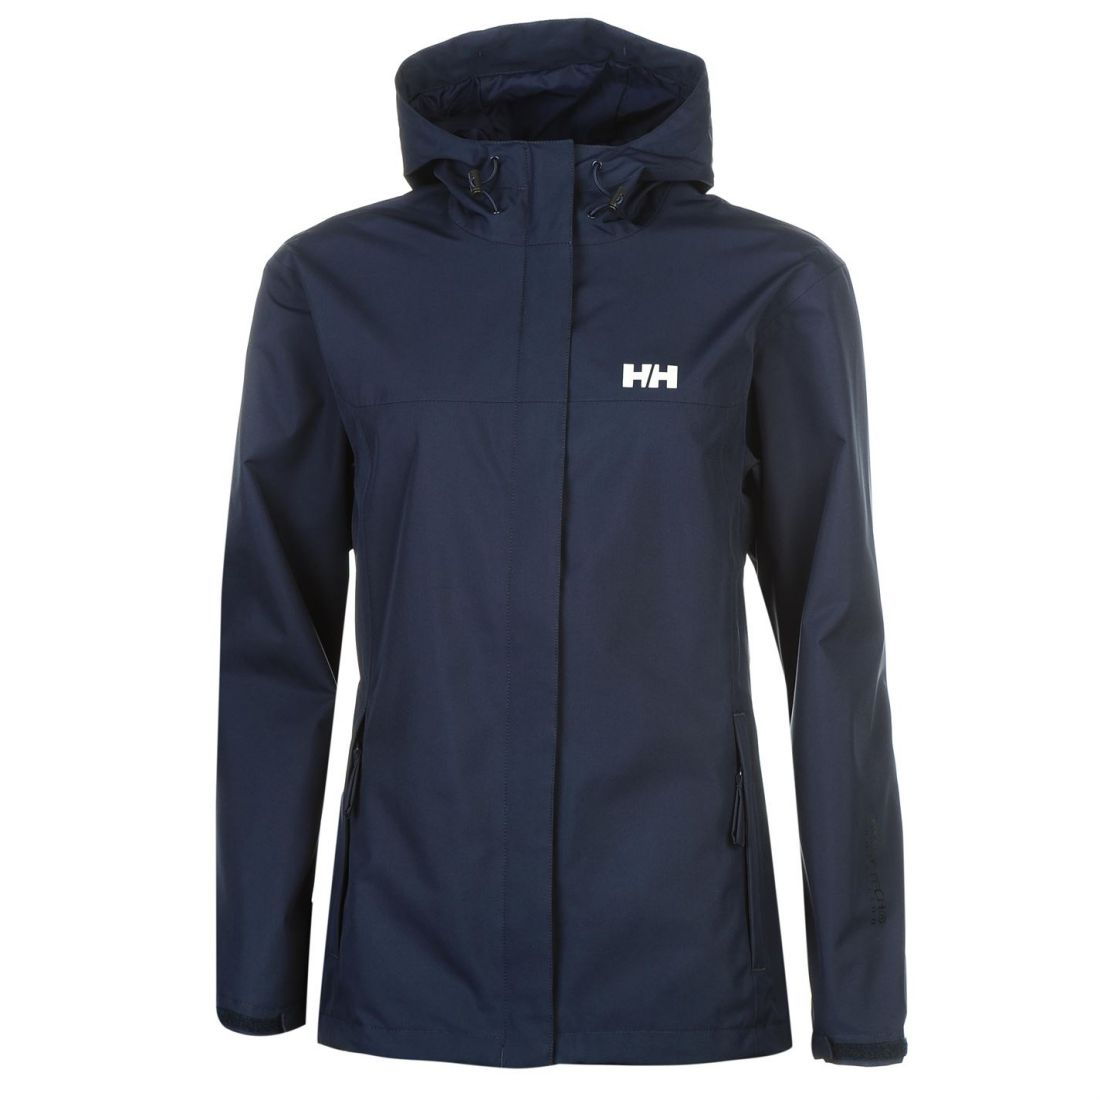 Helly Hansen Womens Coastal Jacket Top Coat Waterproof Breathable  Insulation Zip 5b6bb33071